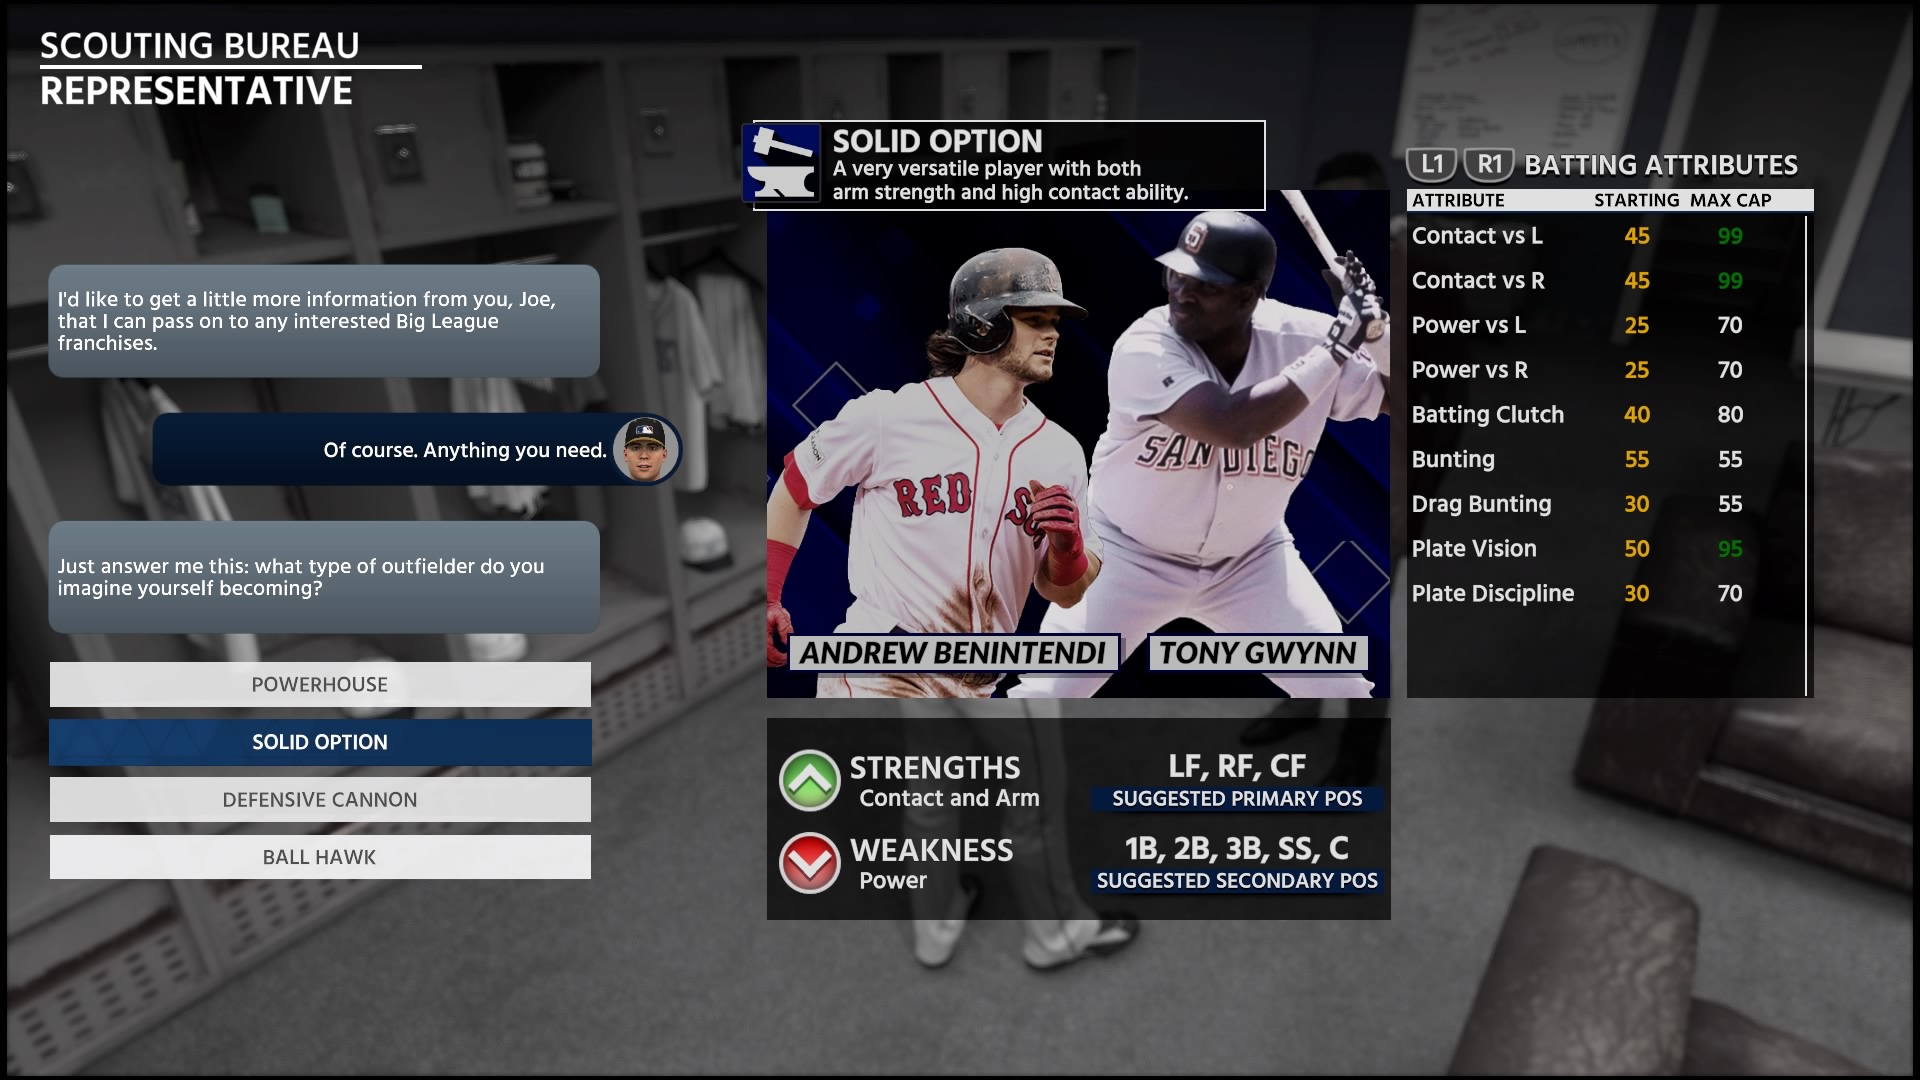 Solid Option batting attributes San Diego Studio/Sony Interactive  Entertainment